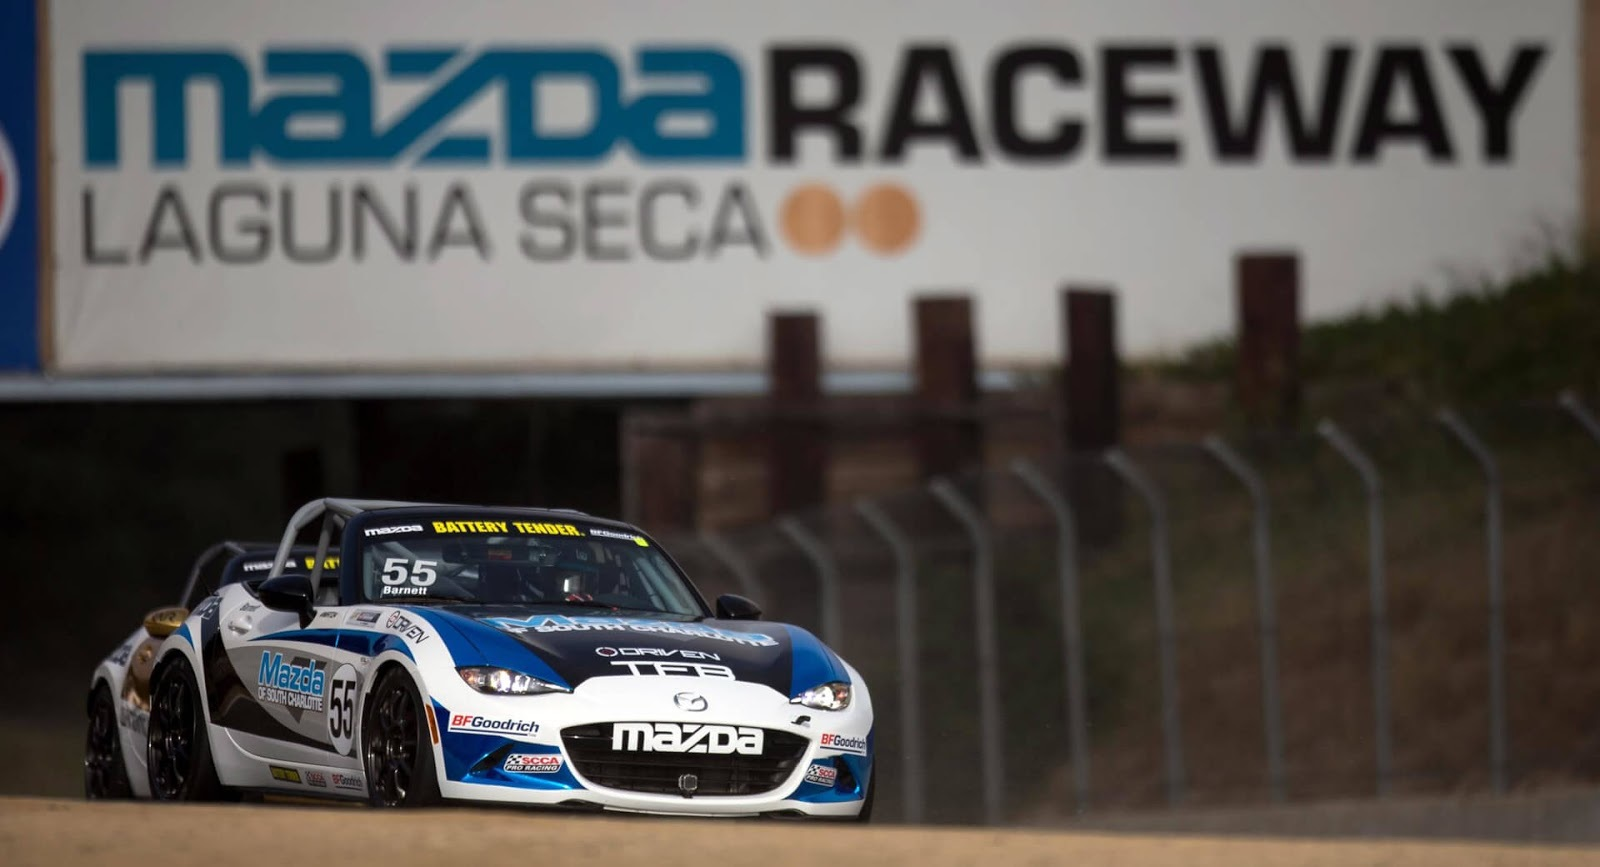 Mazda Parts Company With Laguna Seca - Autolink